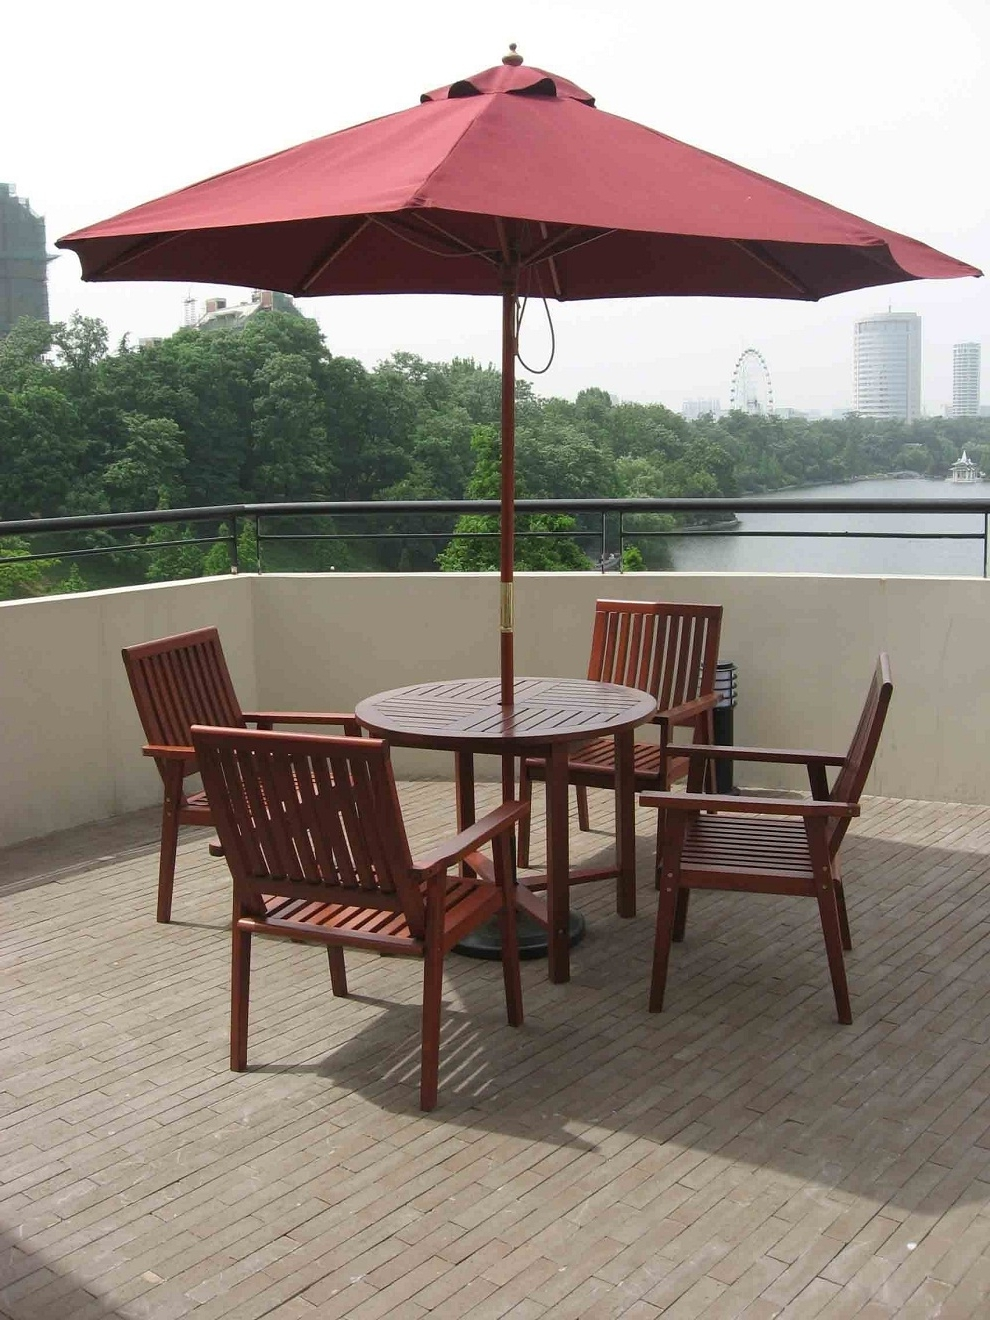 Patio Outdooratio Table Chairs And Umbrellas Umbrella Set Restaurant Pertaining To Latest Patio Furniture With Umbrellas (View 17 of 20)